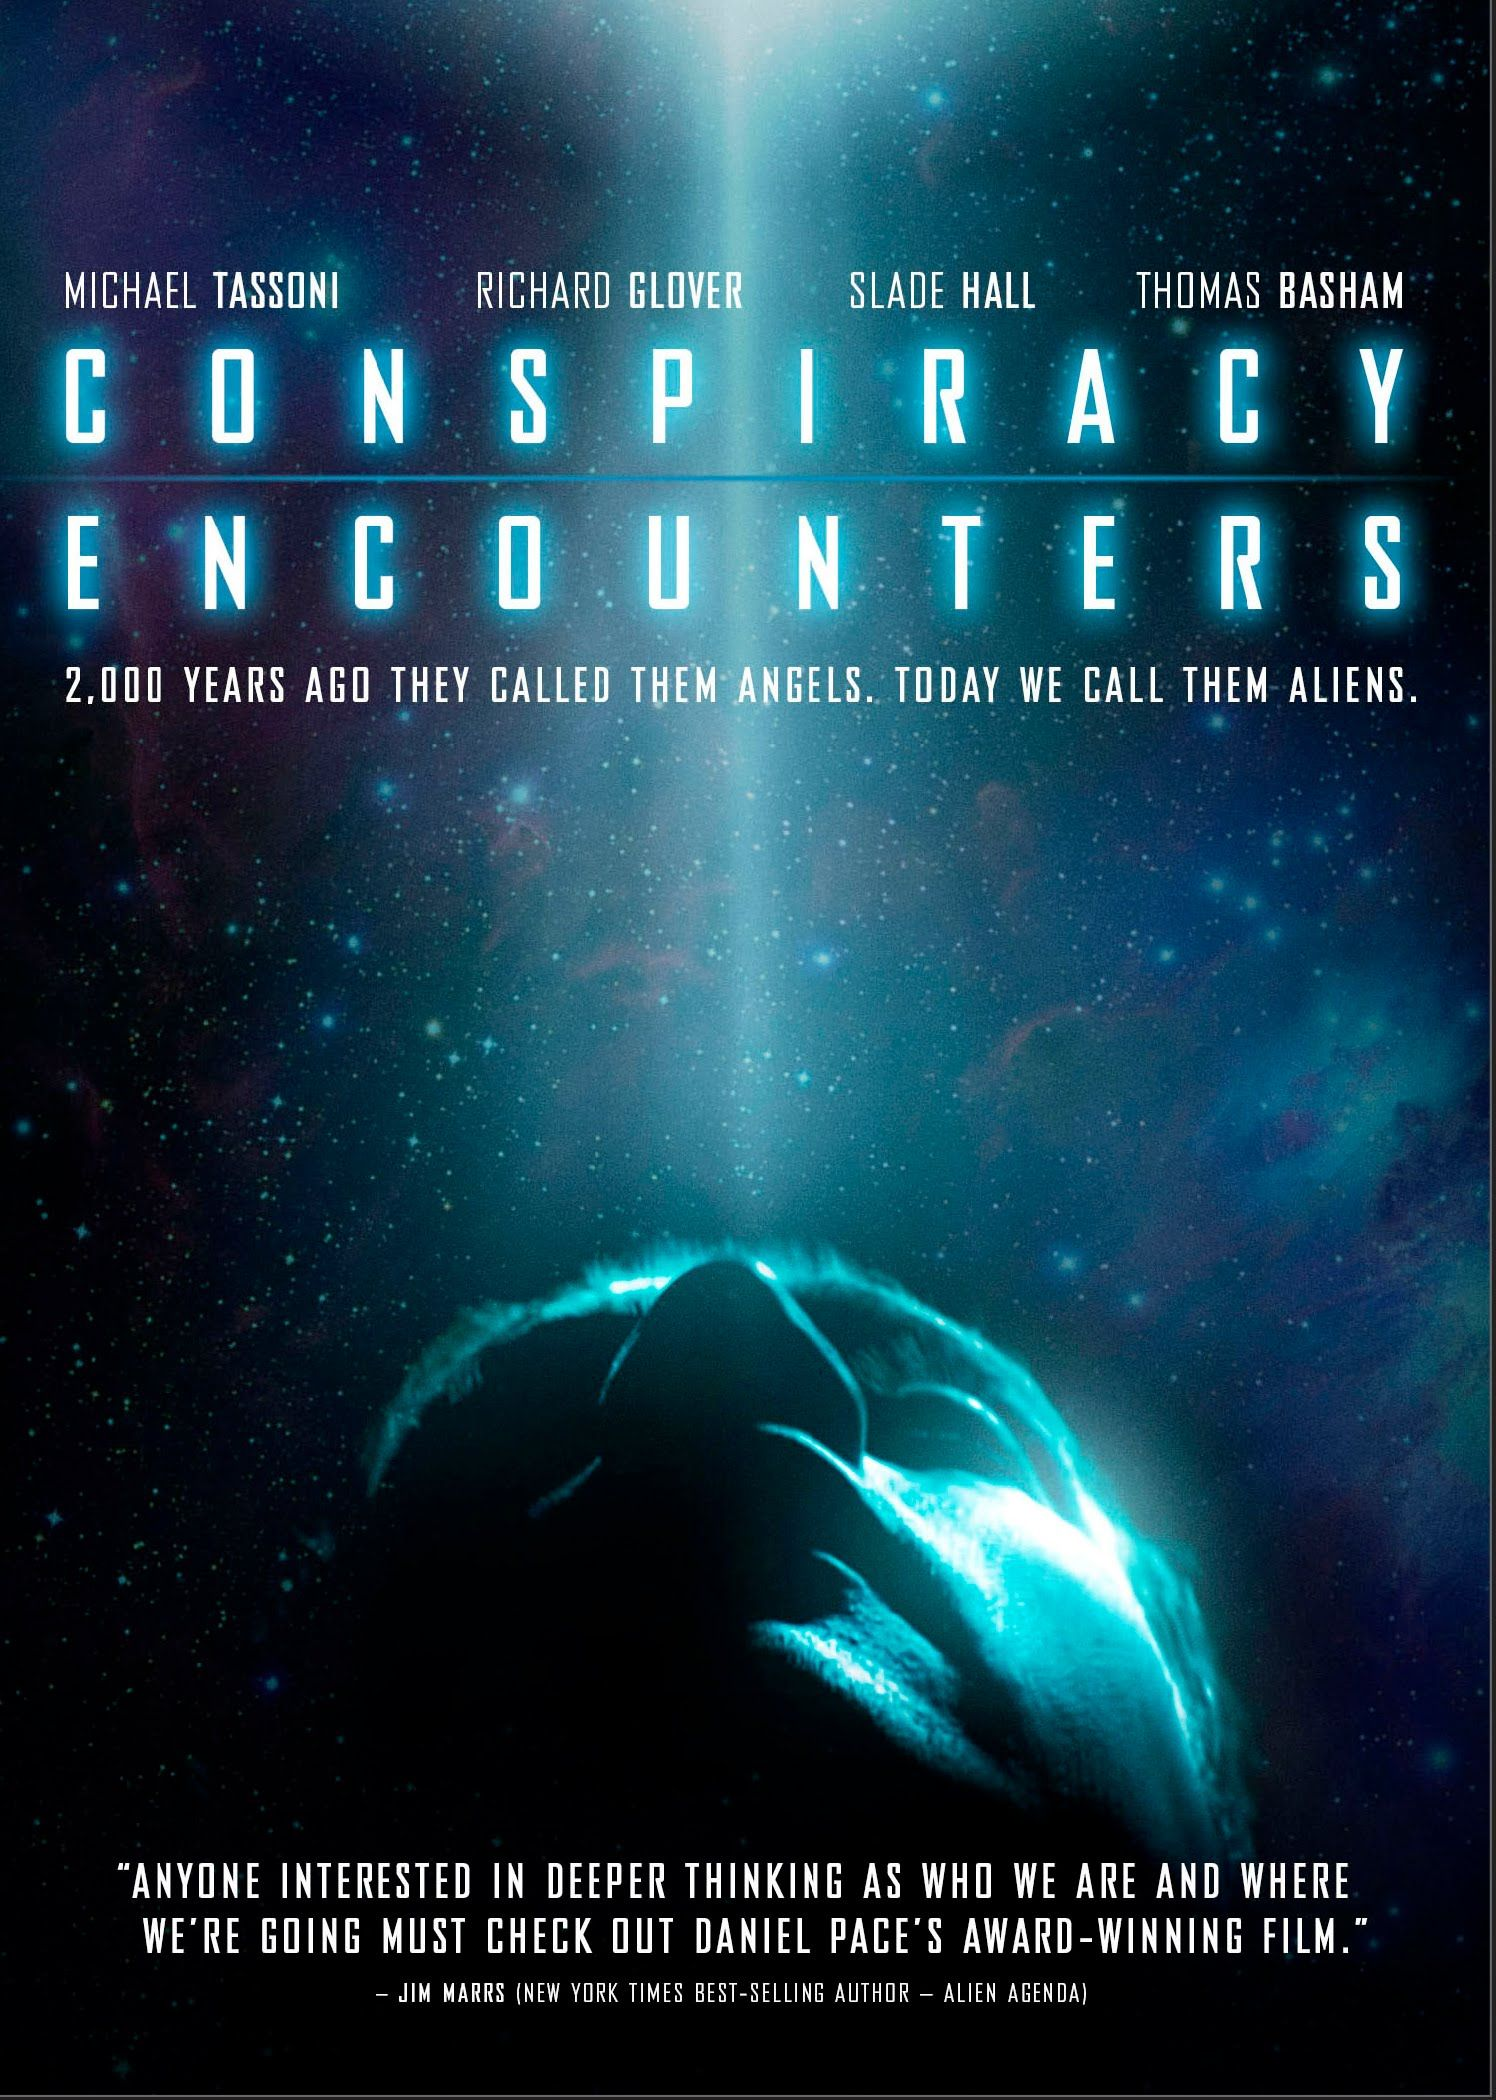 Conspiracy encounters dvdrip full movie watch online free